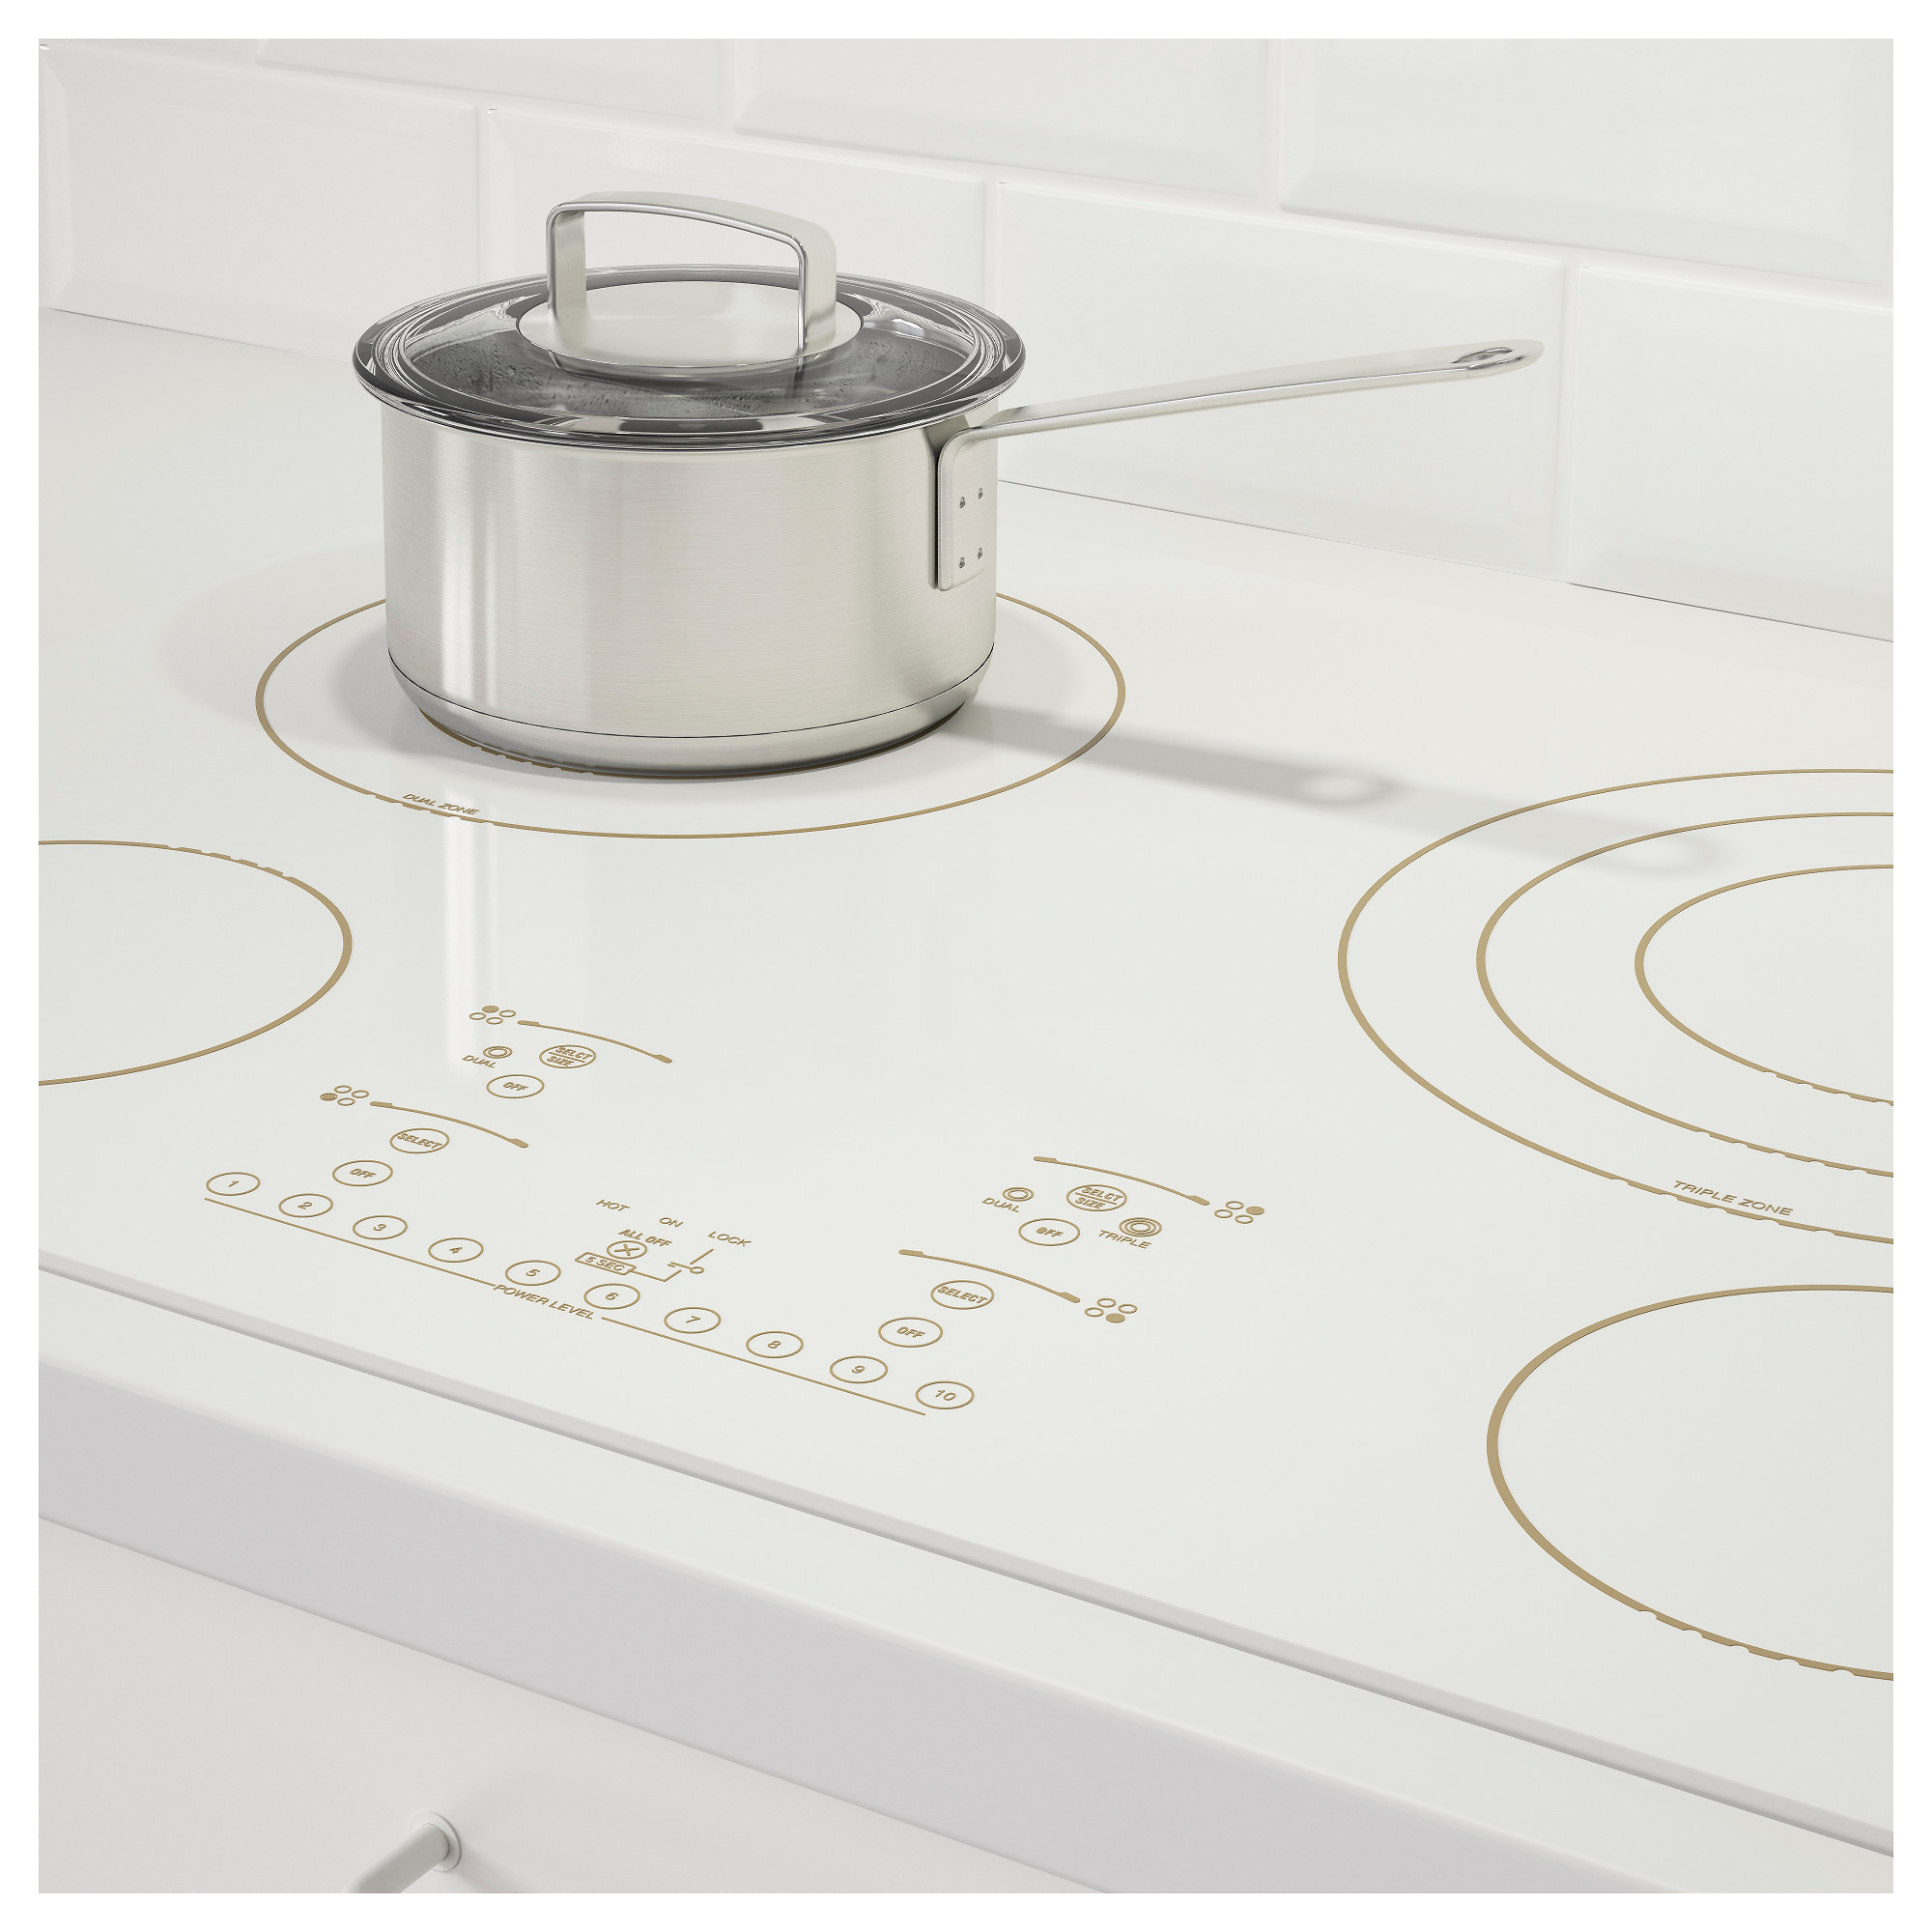 Nutid 4 Element Glass Ceramic Cooktop Ikea Wiring Zones Kitchen